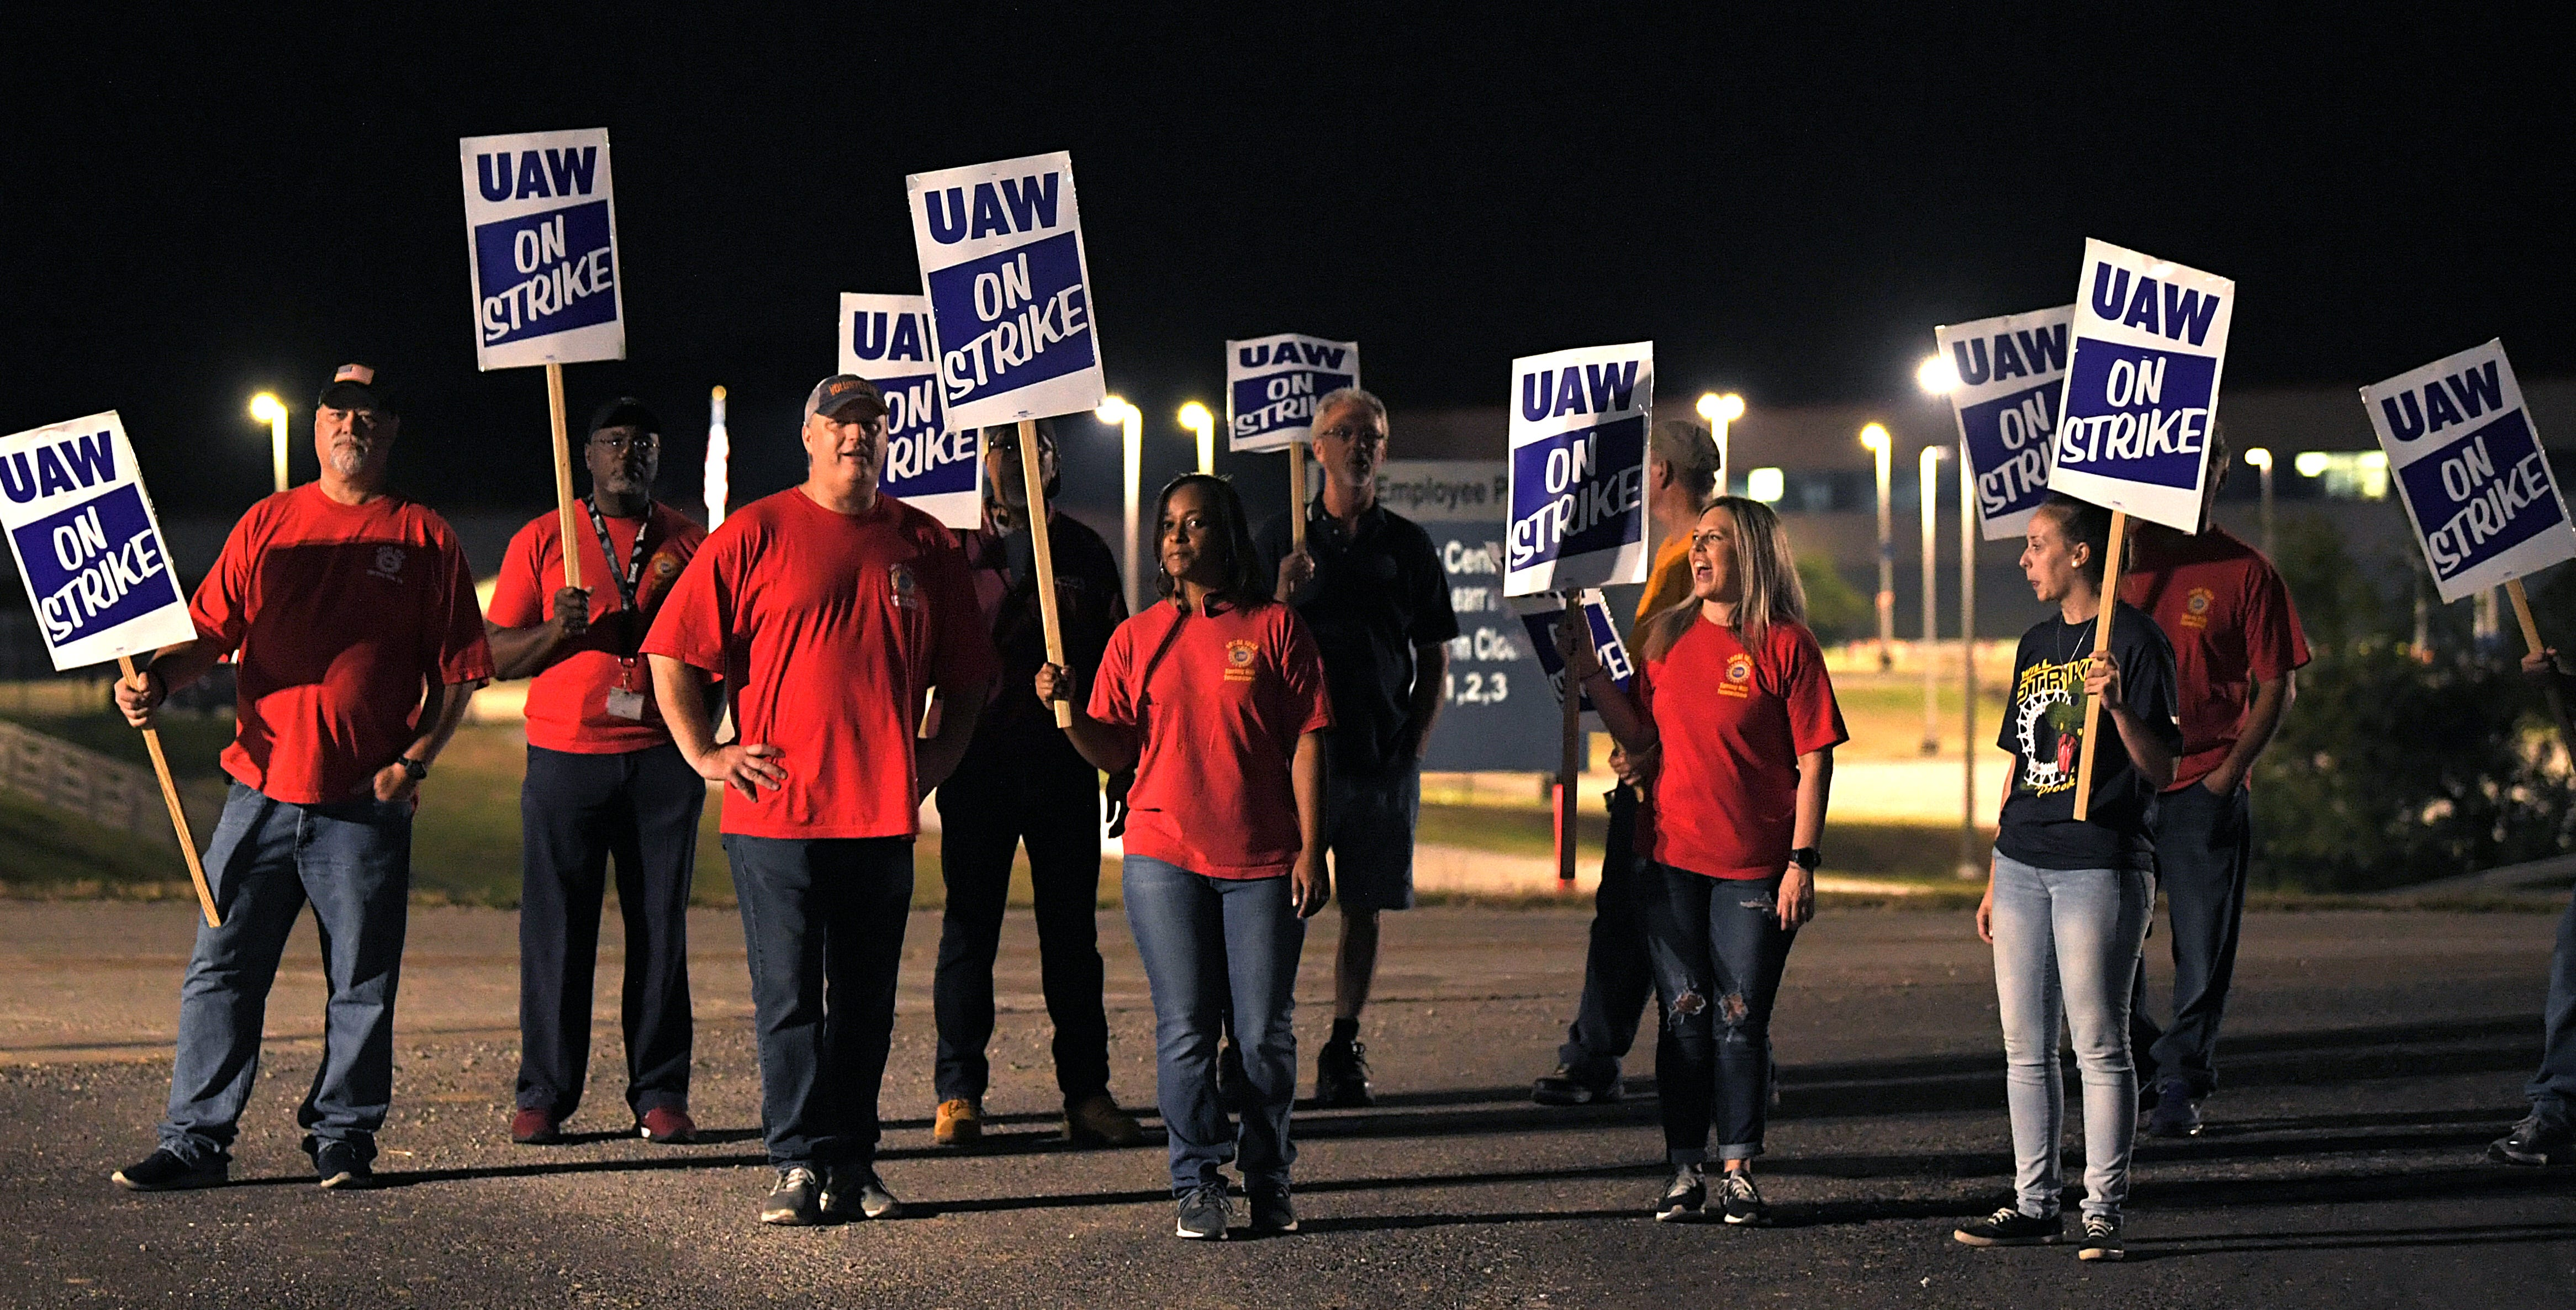 Southern Auto Parts >> Gm Strike Auto Parts Suppliers Elude Layoffs As Uaw Strike